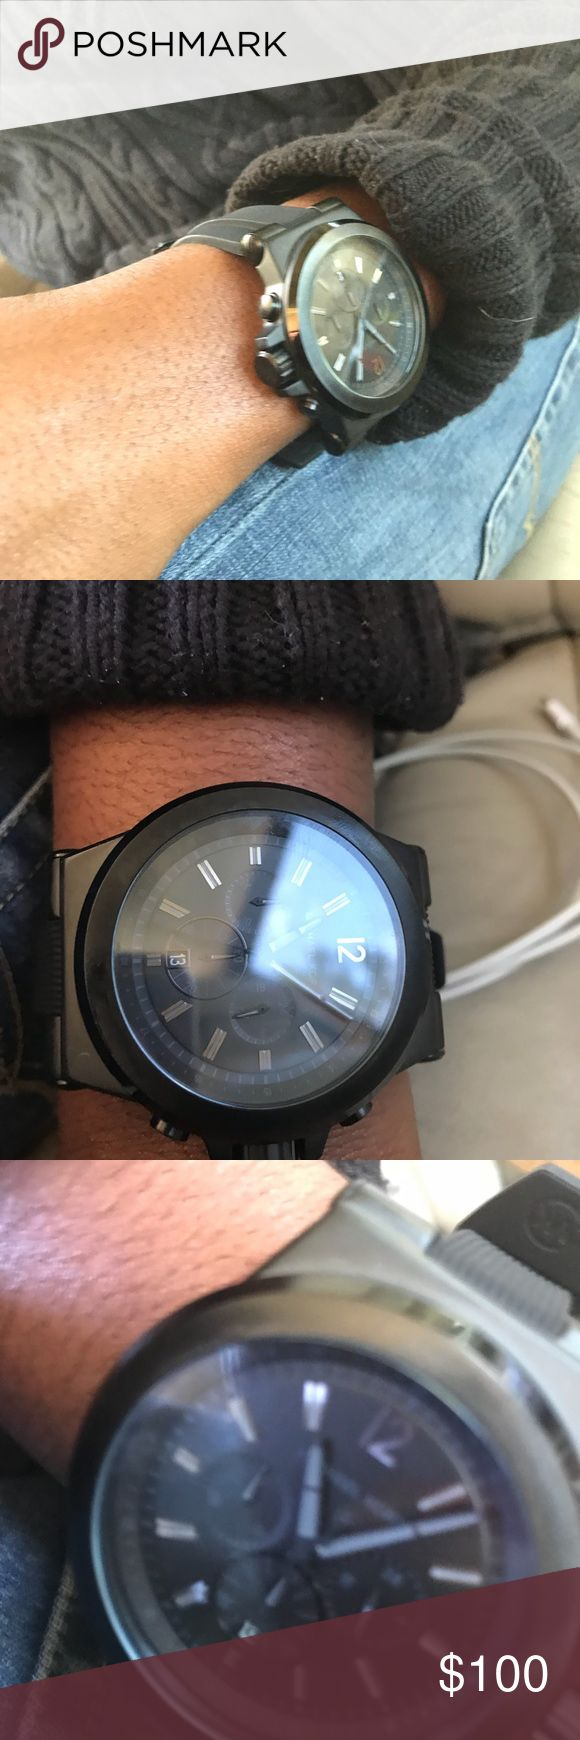 Michael Kors black Large face men's watch nwot New without tags never worn out Black Michael Kors watch Michael Kors Accessories Watches